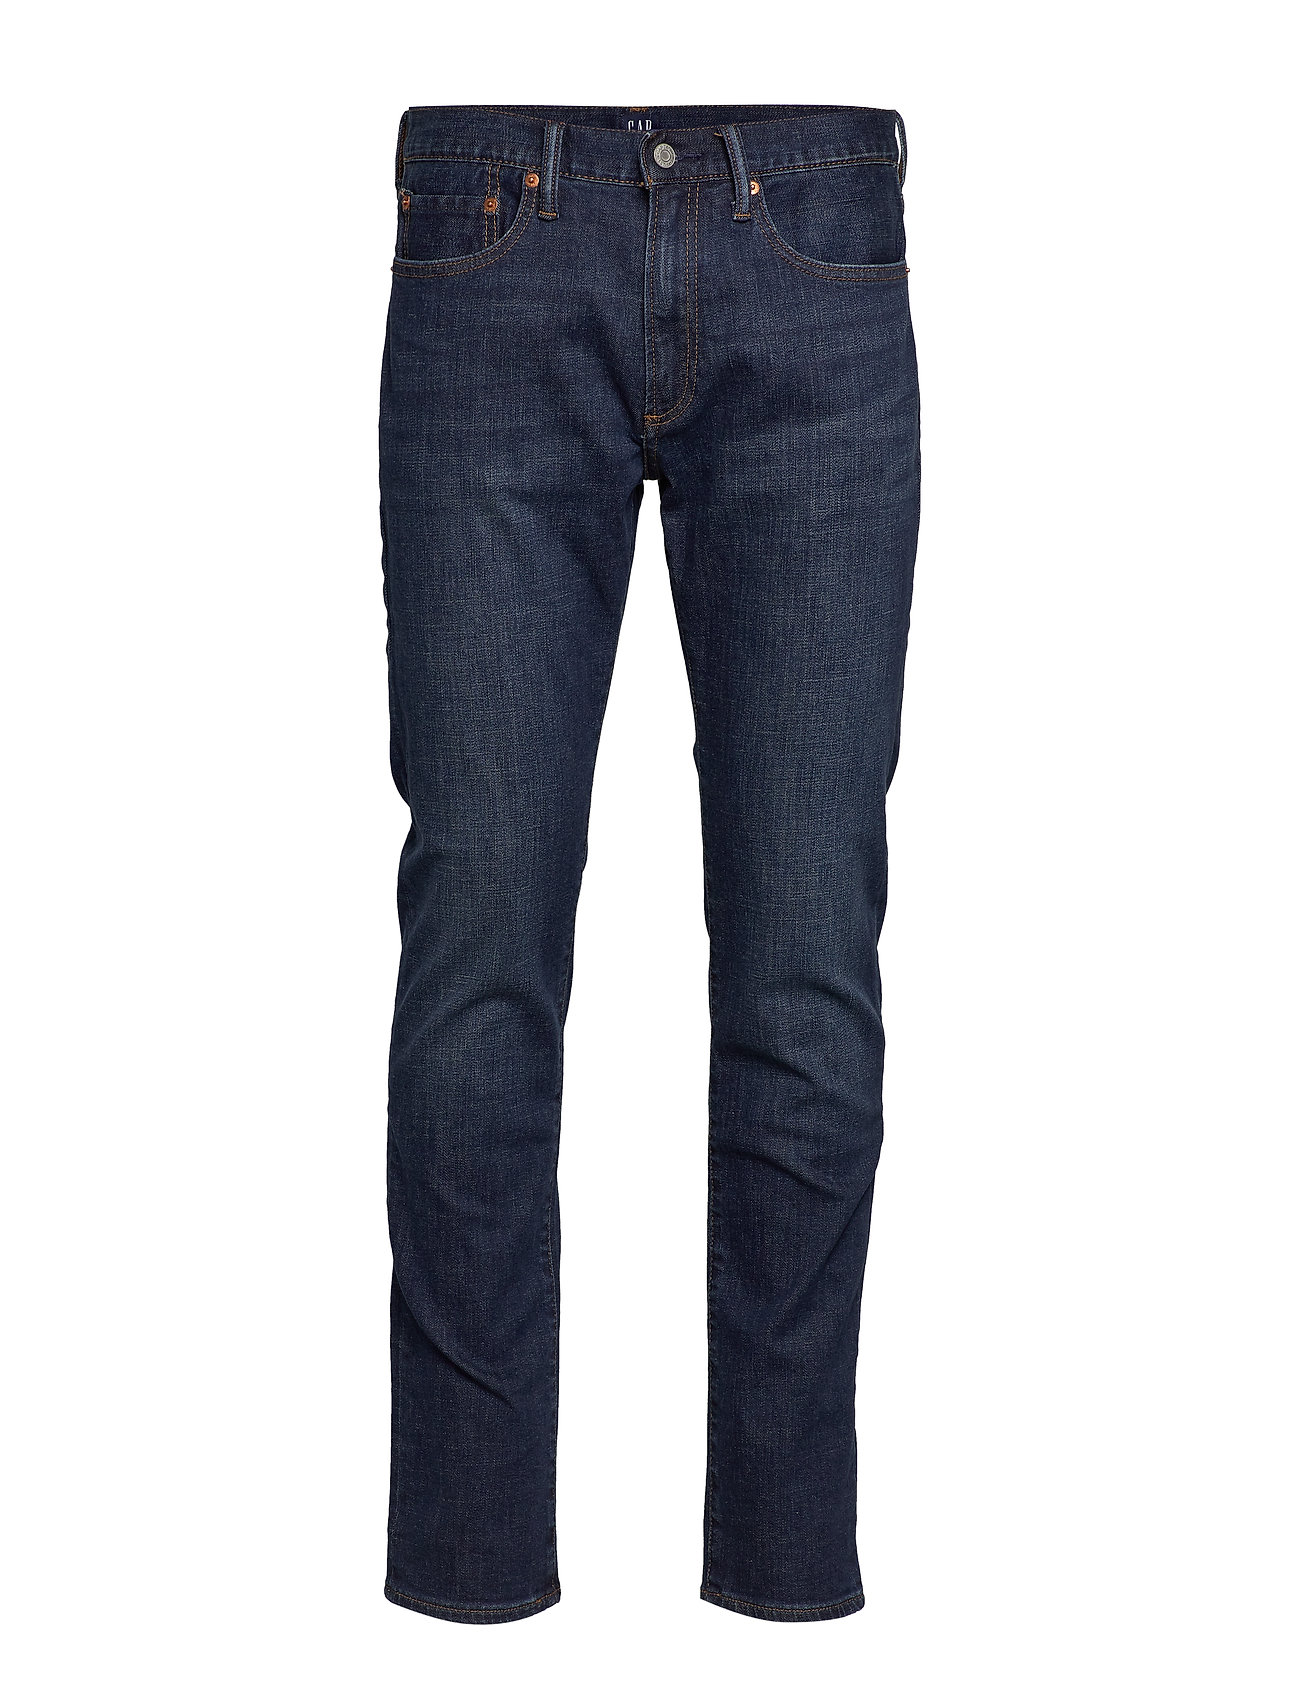 GAP Slim Jeans with GapFlex - WORN DARK